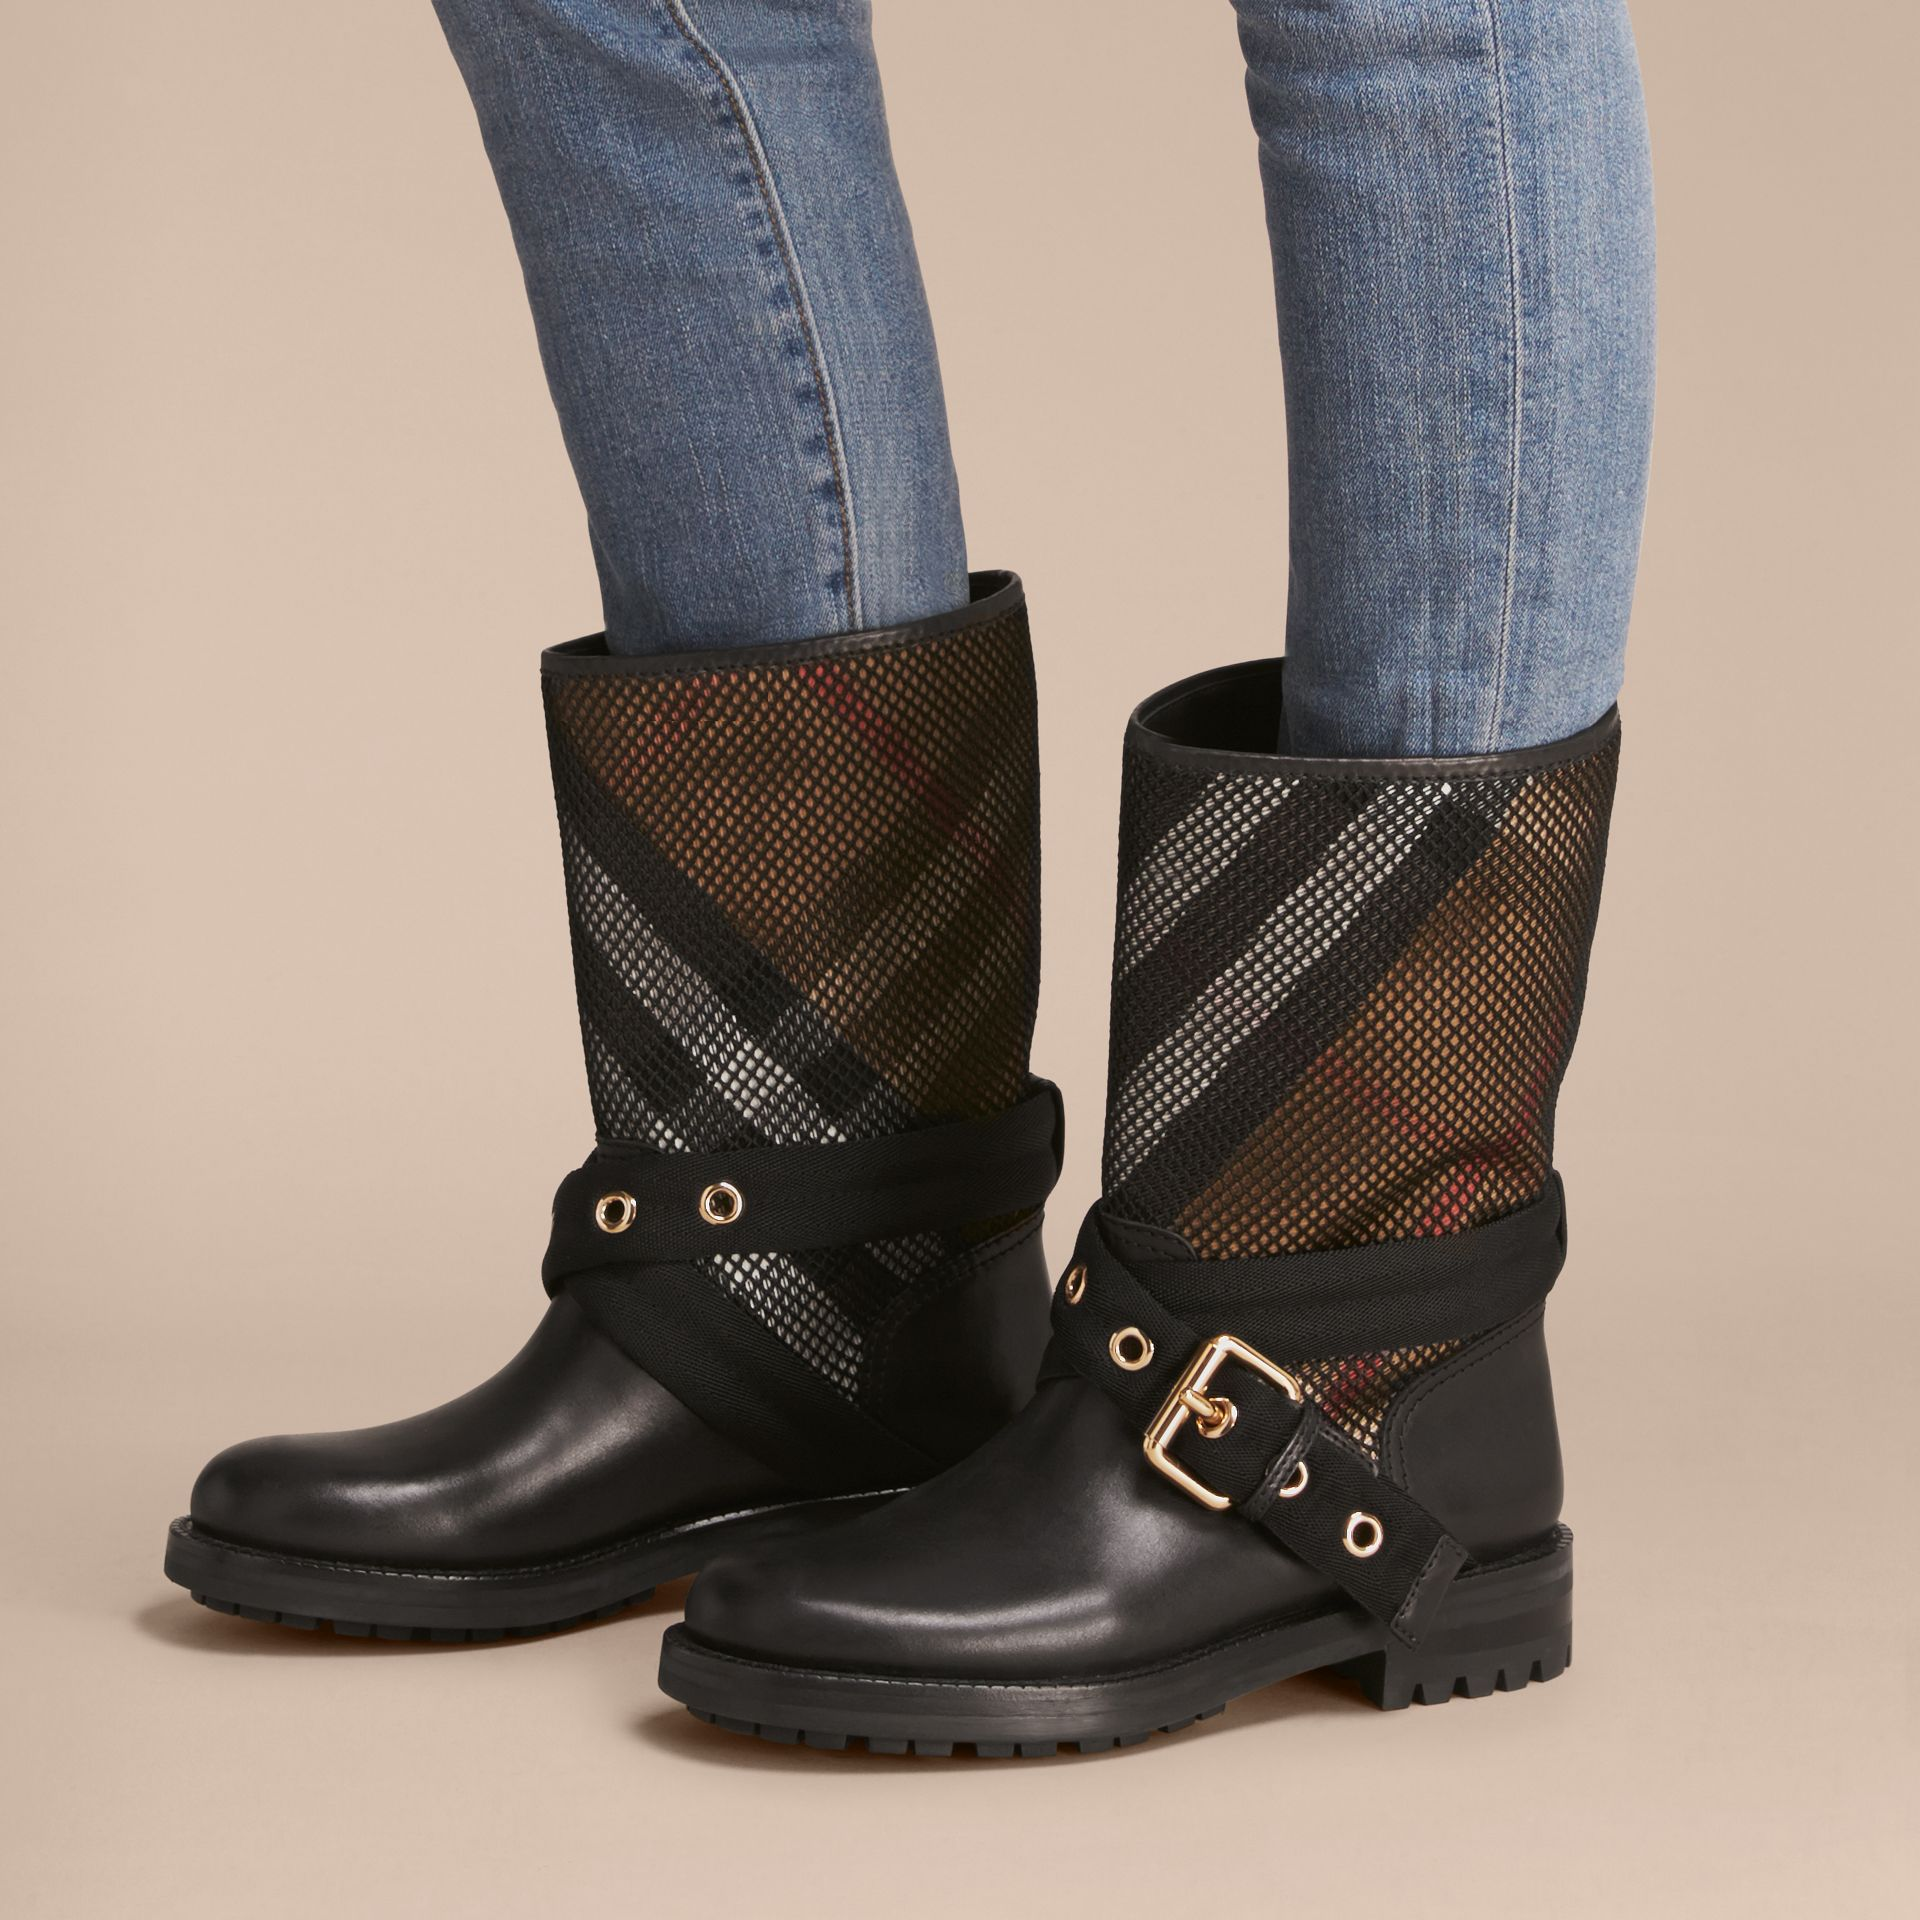 Leather, Mesh and House Check Boots in Black - Women | Burberry - gallery image 3